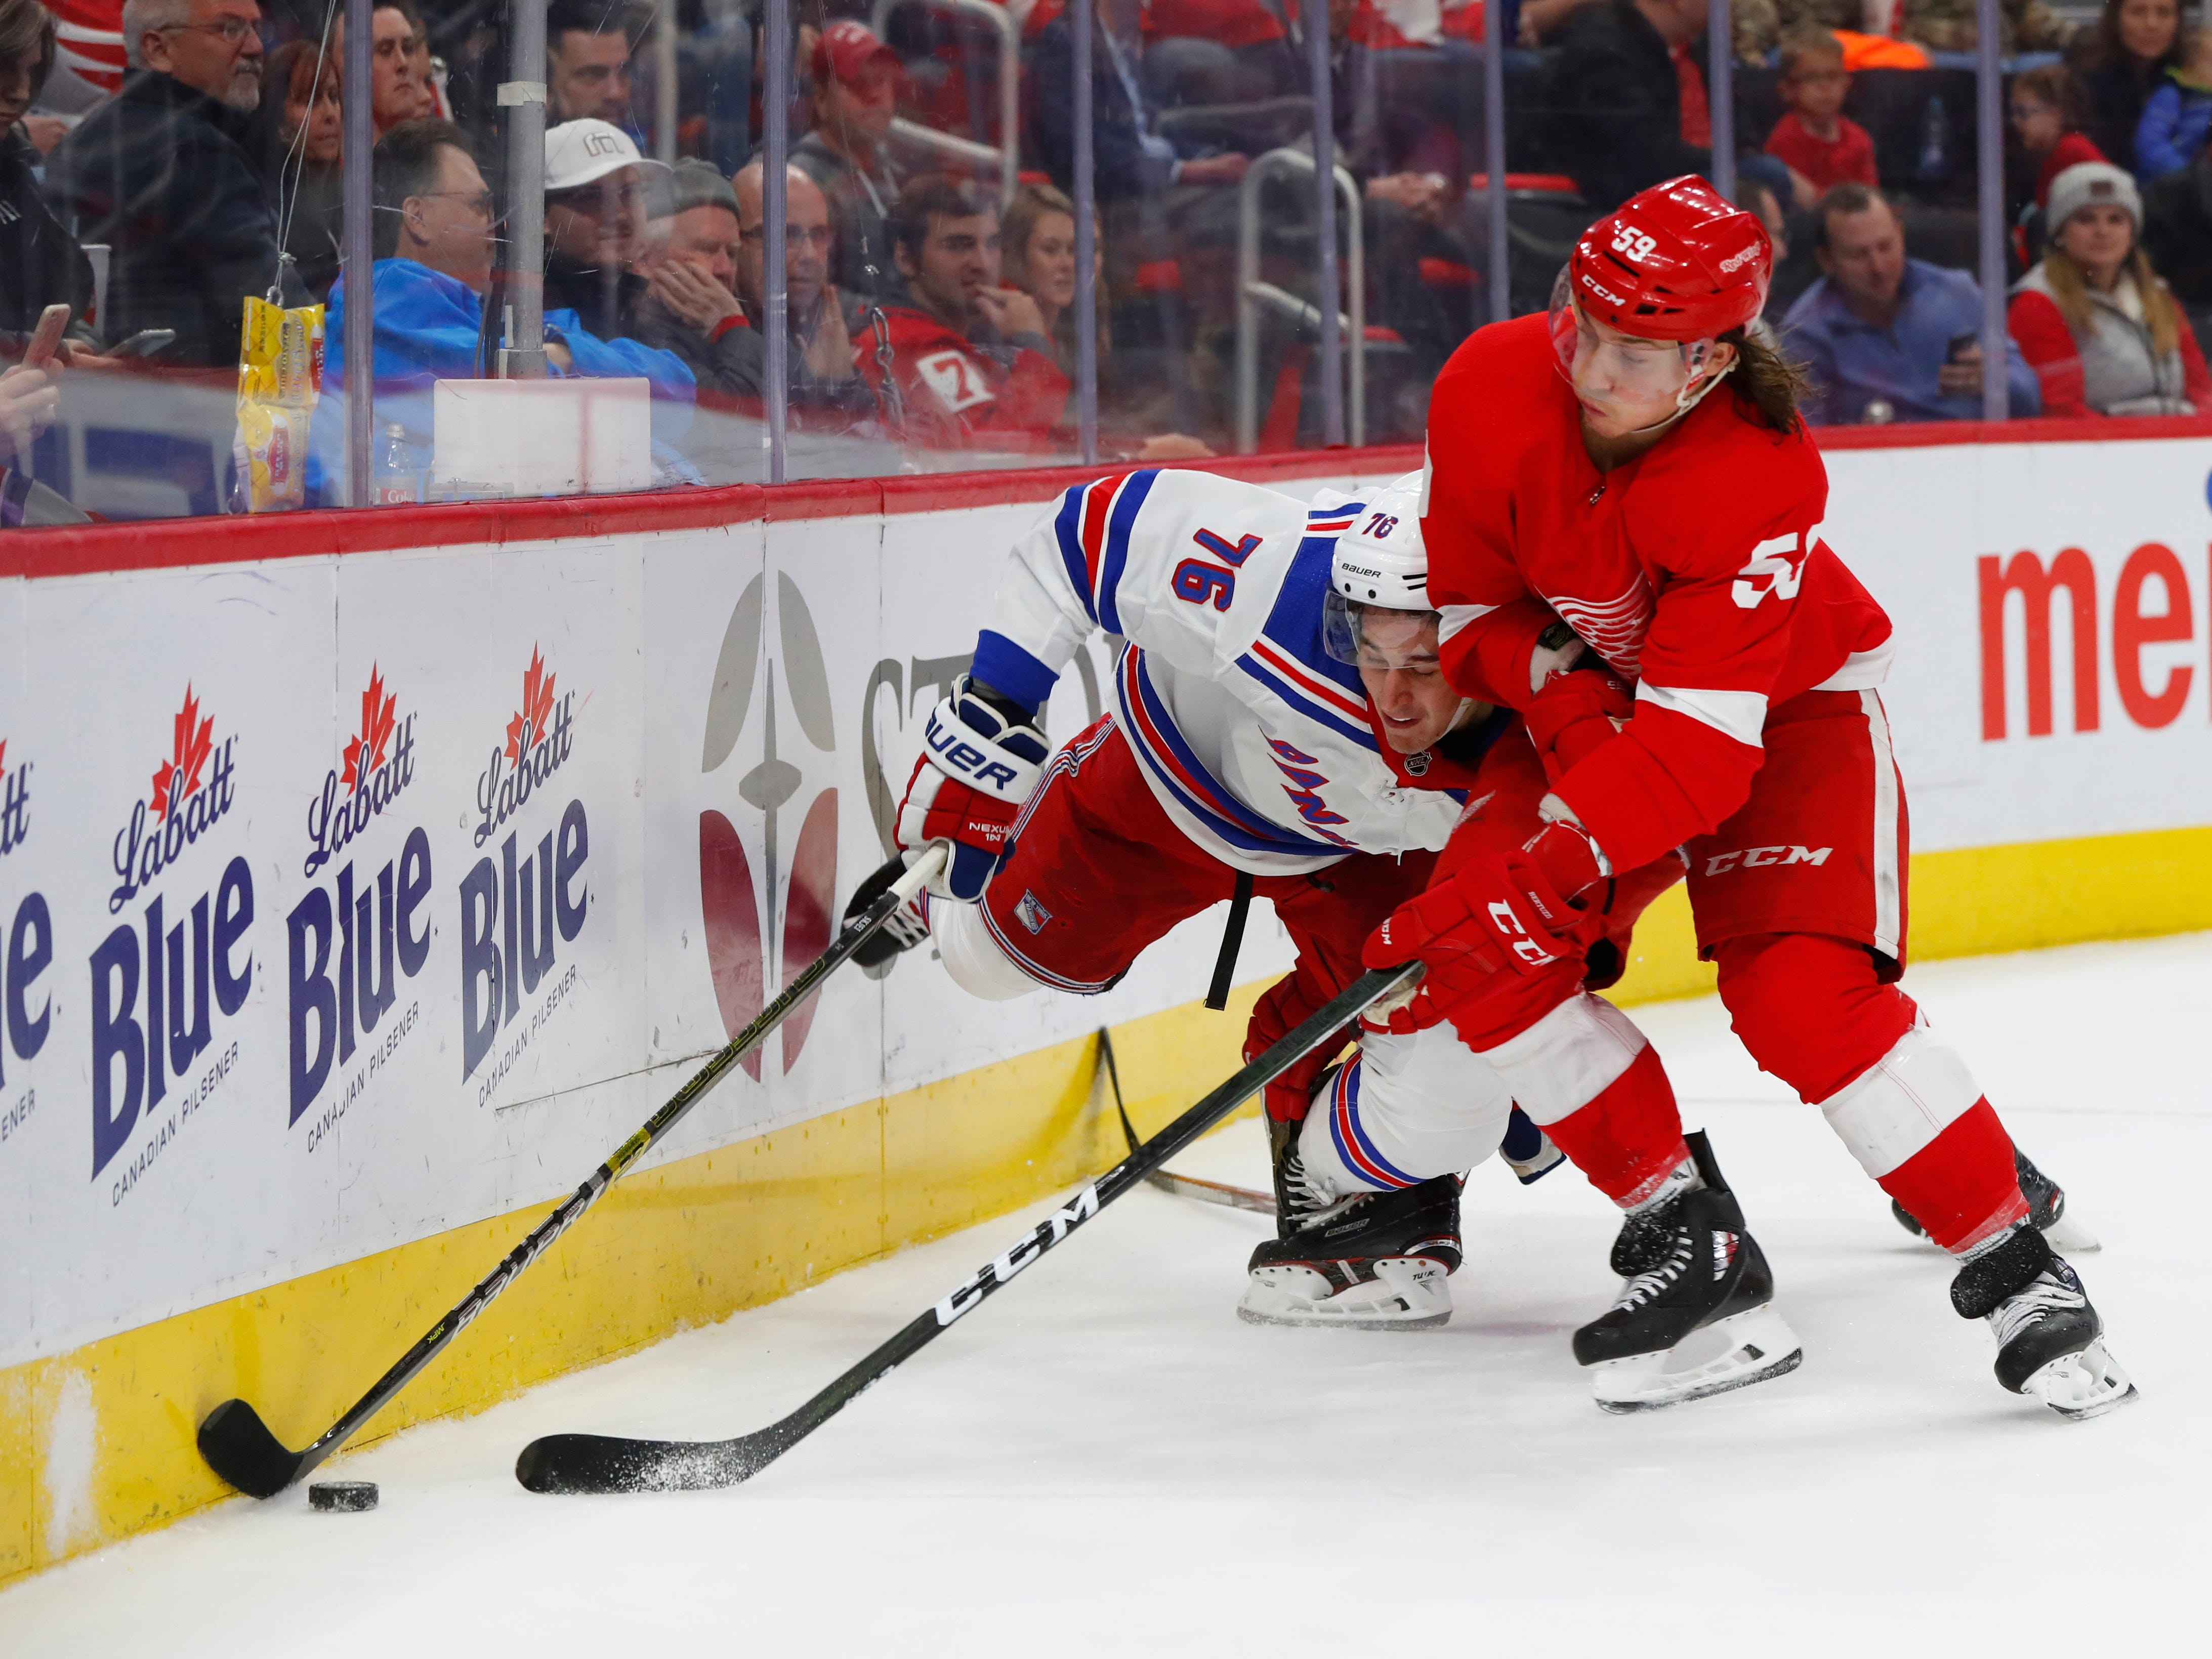 Detroit Red Wings' Tyler Bertuzzi (59) and New York Rangers' Brady Skjei (76) battle for the puck in the second period of an NHL hockey game in Detroit, Friday, Nov. 9, 2018.